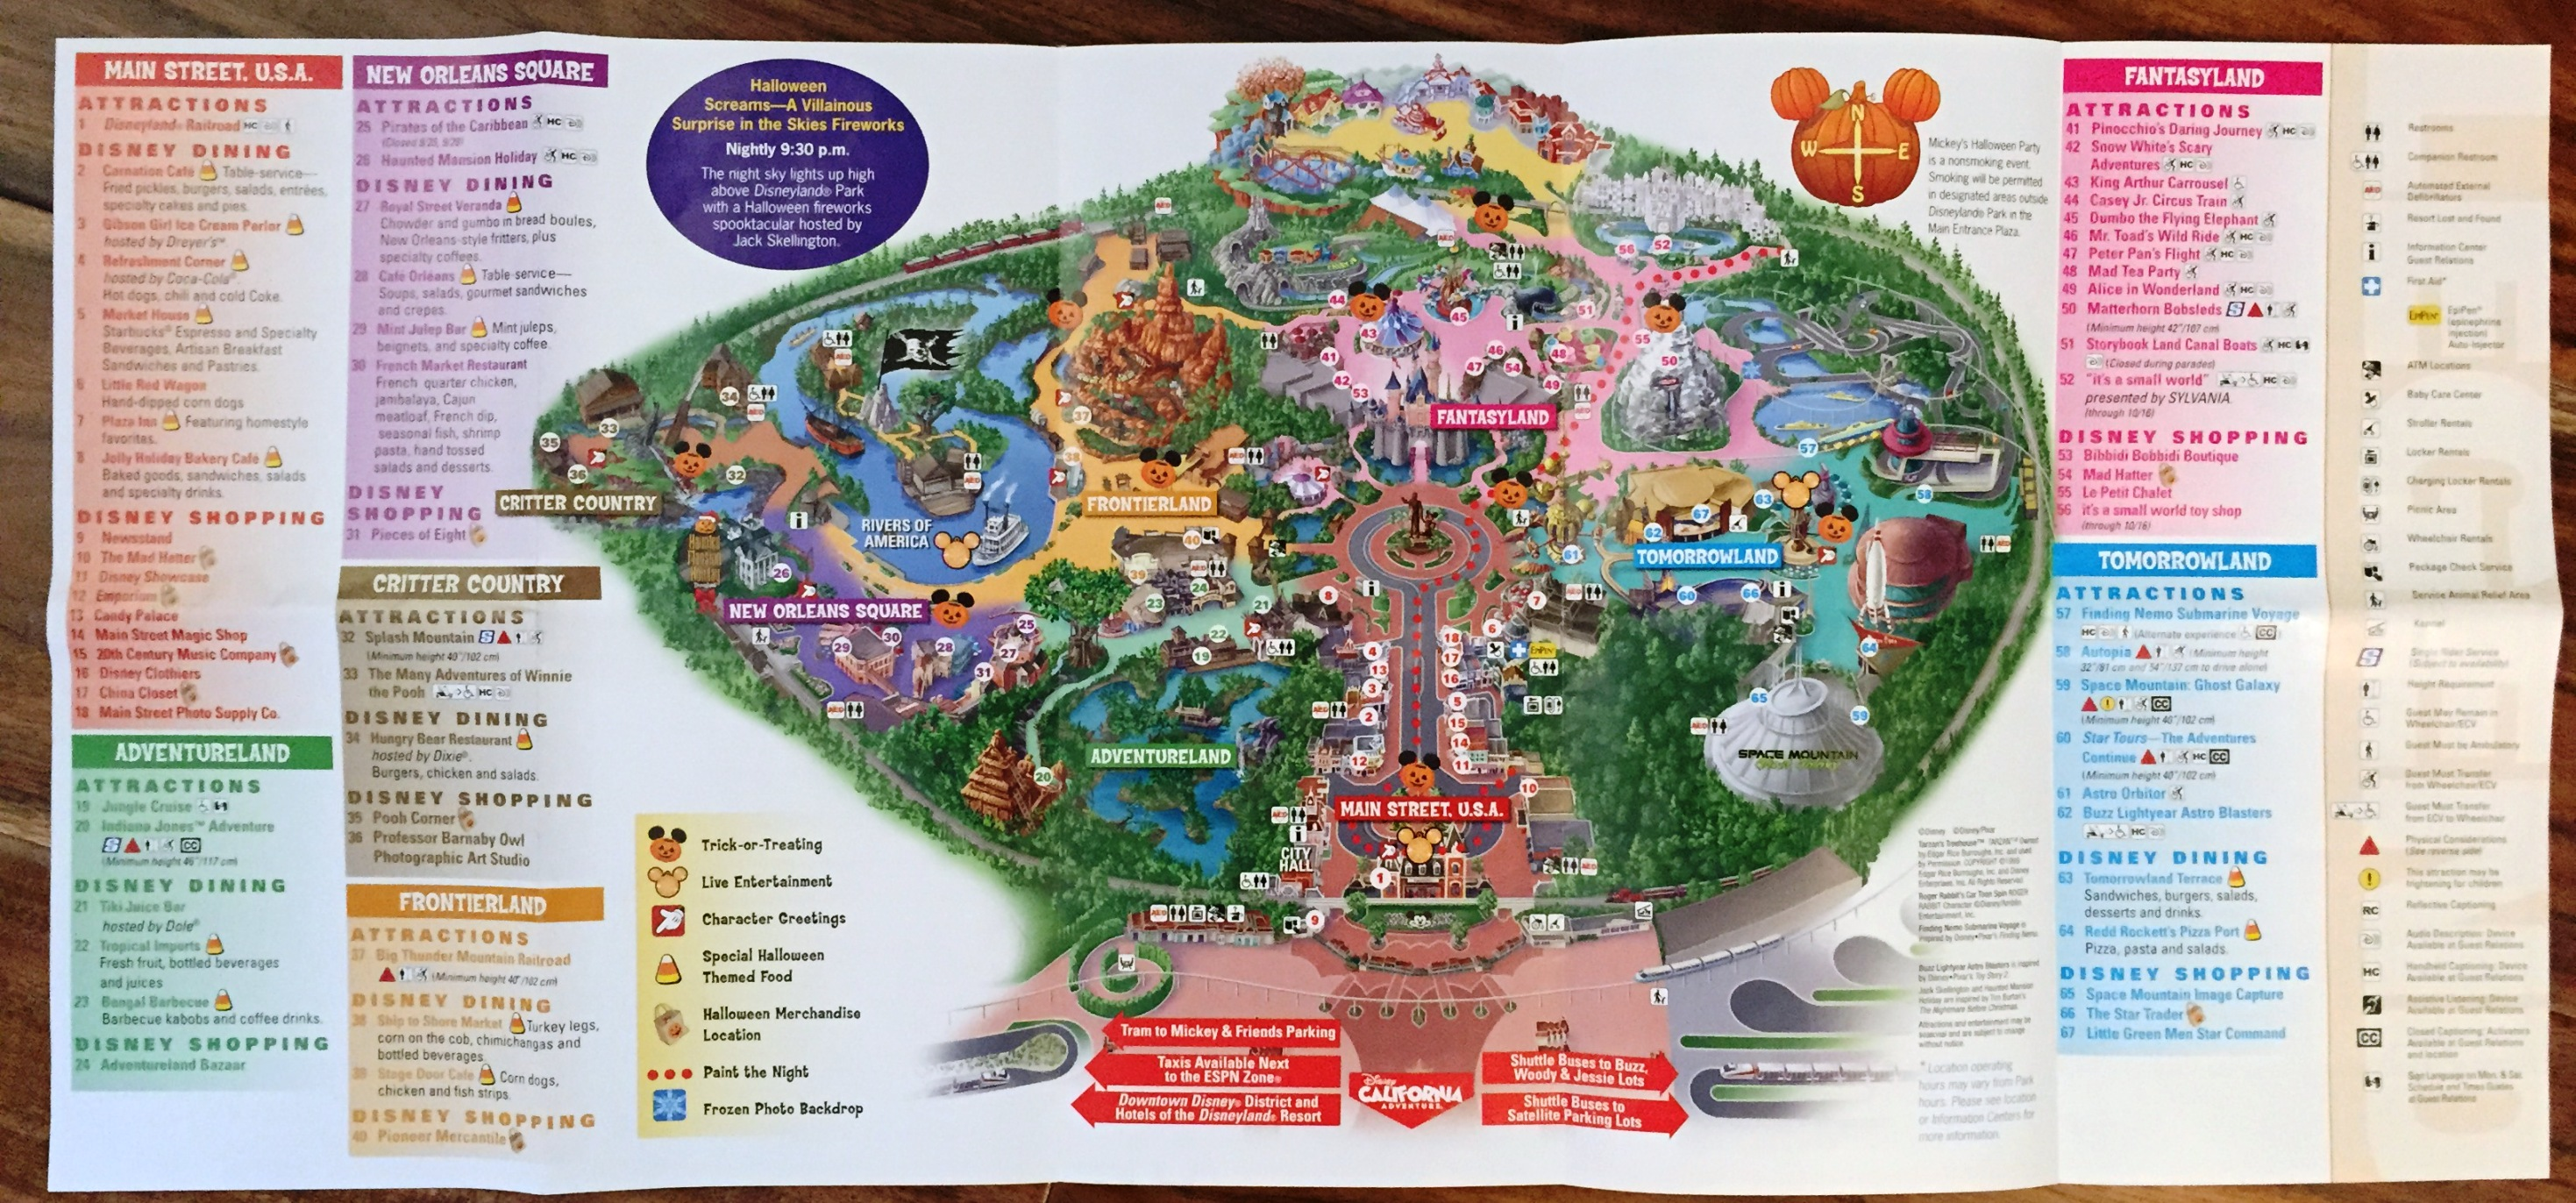 Download ePub PDF Book      map od disneyland map od disneyland   The world widest choice of designer wallpapers and  fabrics delivered direct to your door  Free samples by post to try before  you